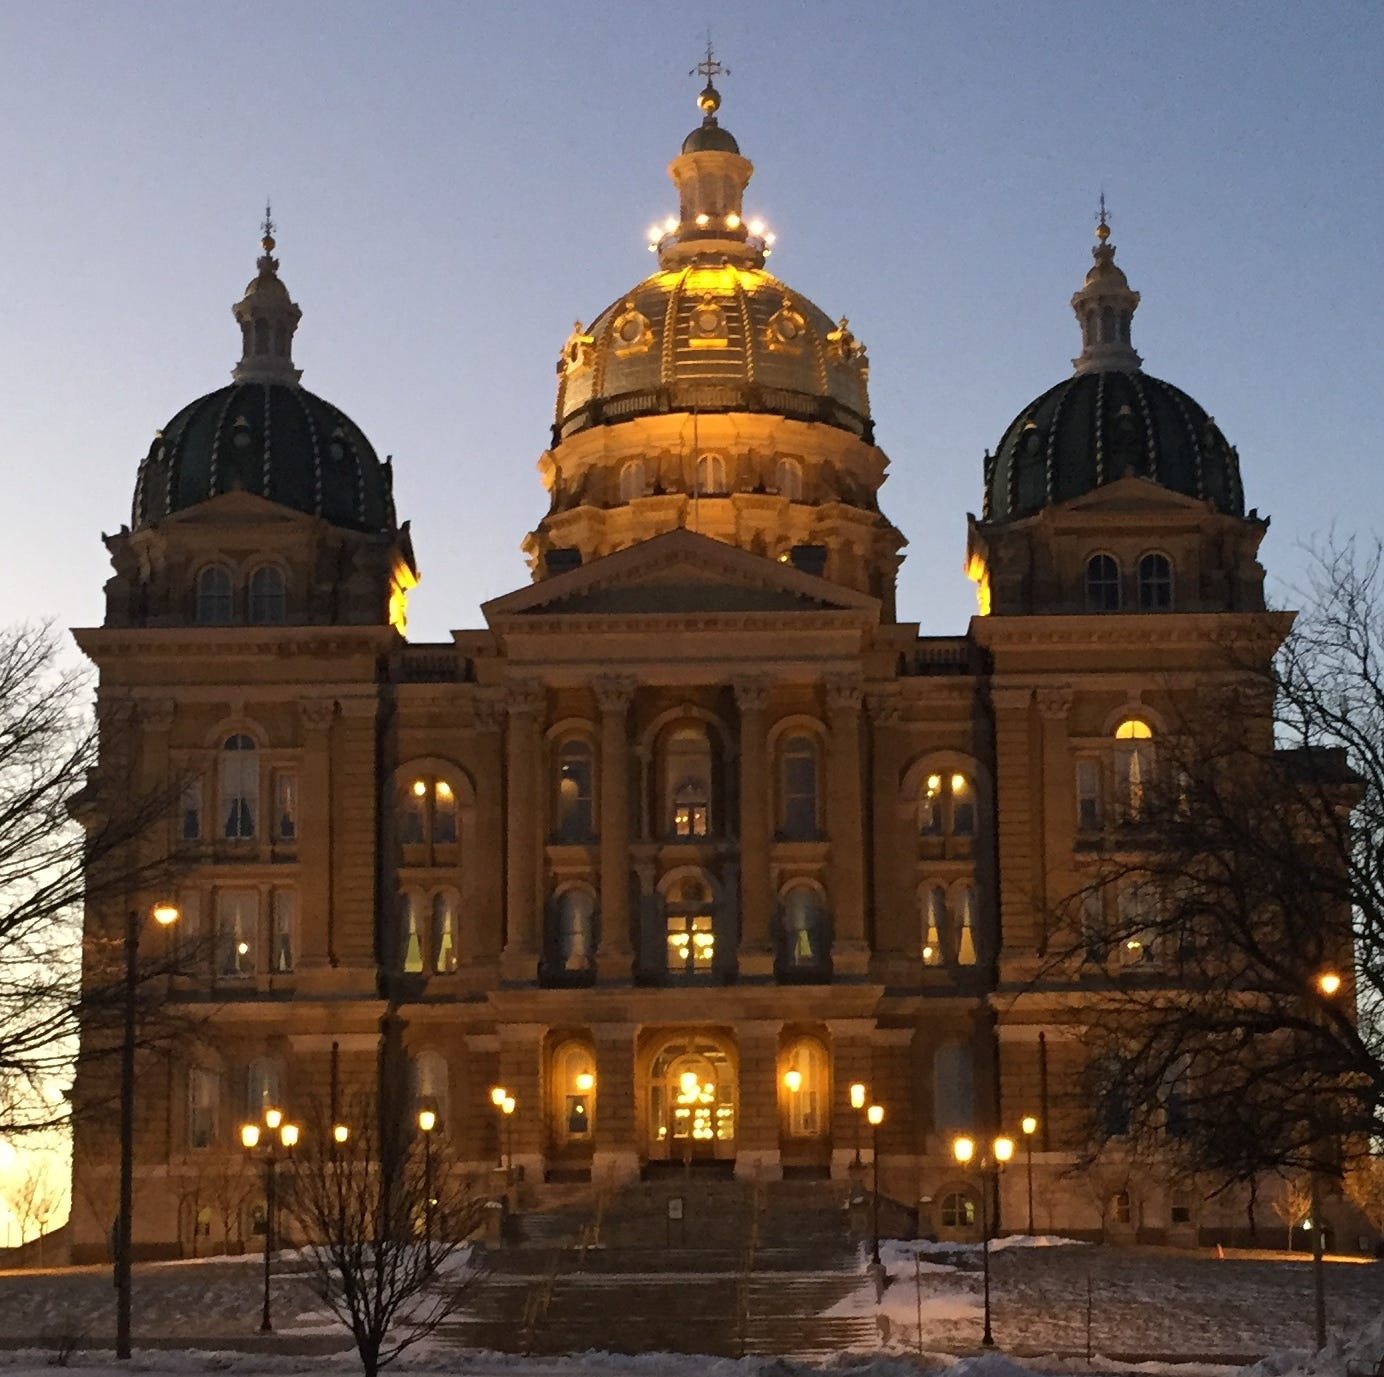 Legislature focused too little on improving Iowa, too much on petty, vindictive measures